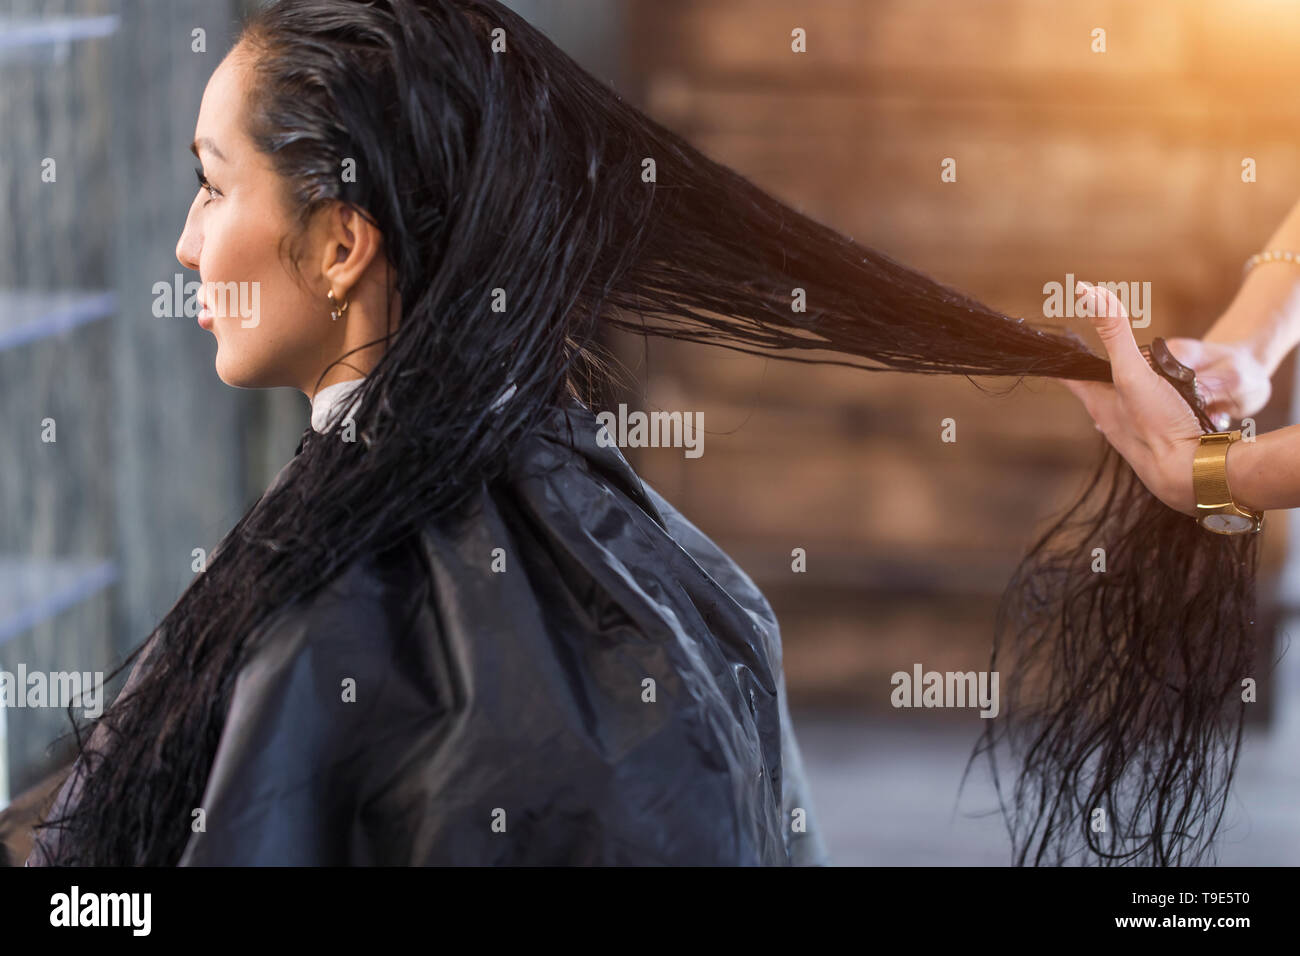 Spa treatment for long hair. Care, keratin recovery, hairdresser - Stock Image